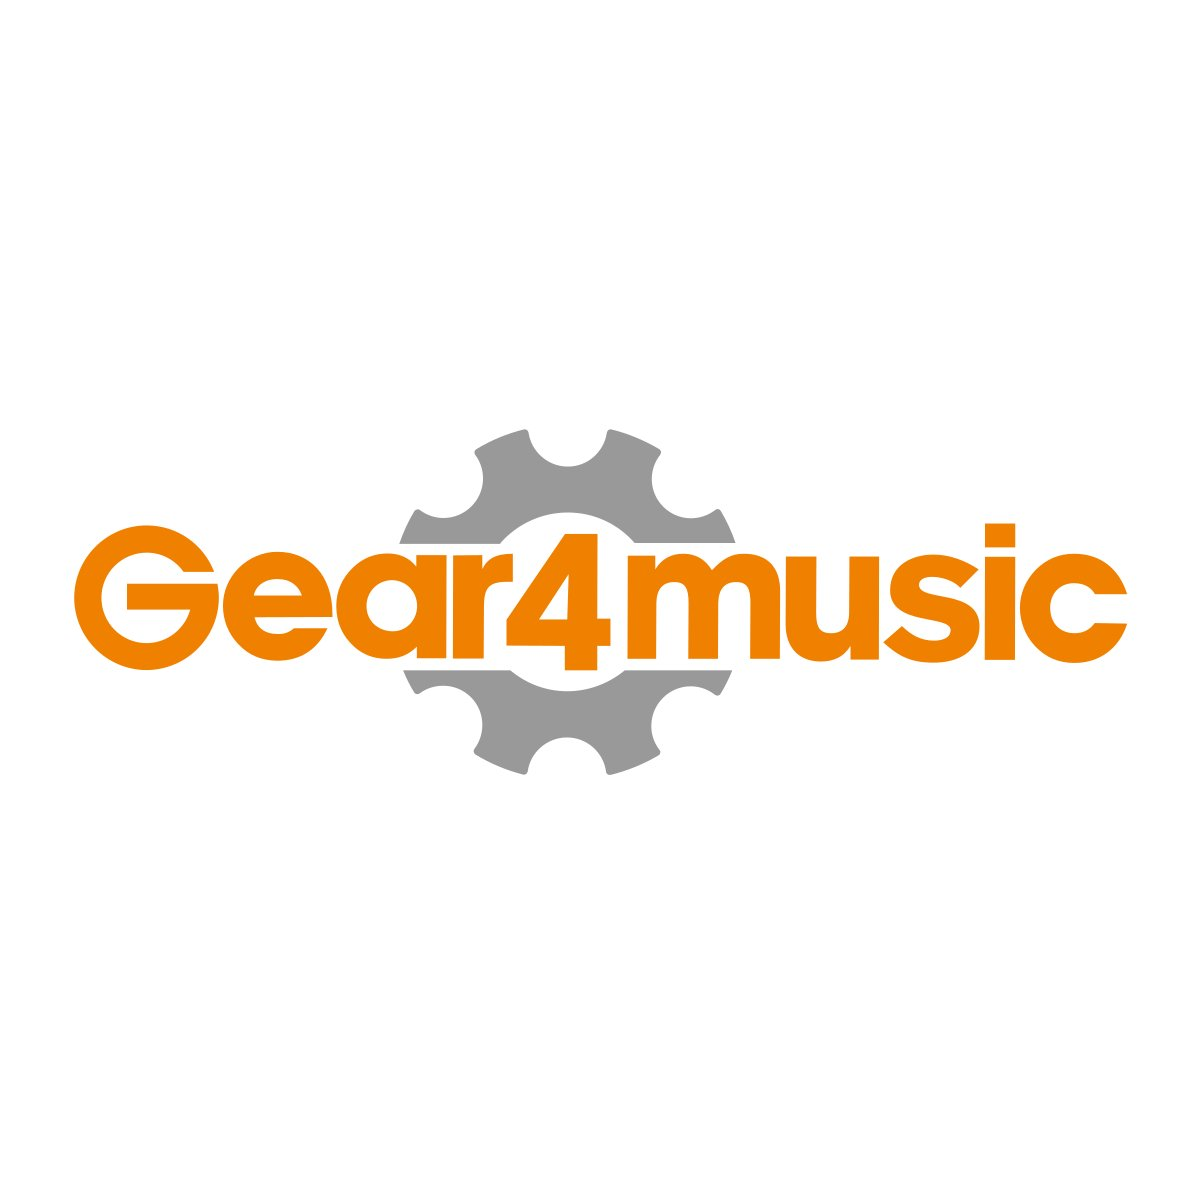 Studieklarinet van Gear4music